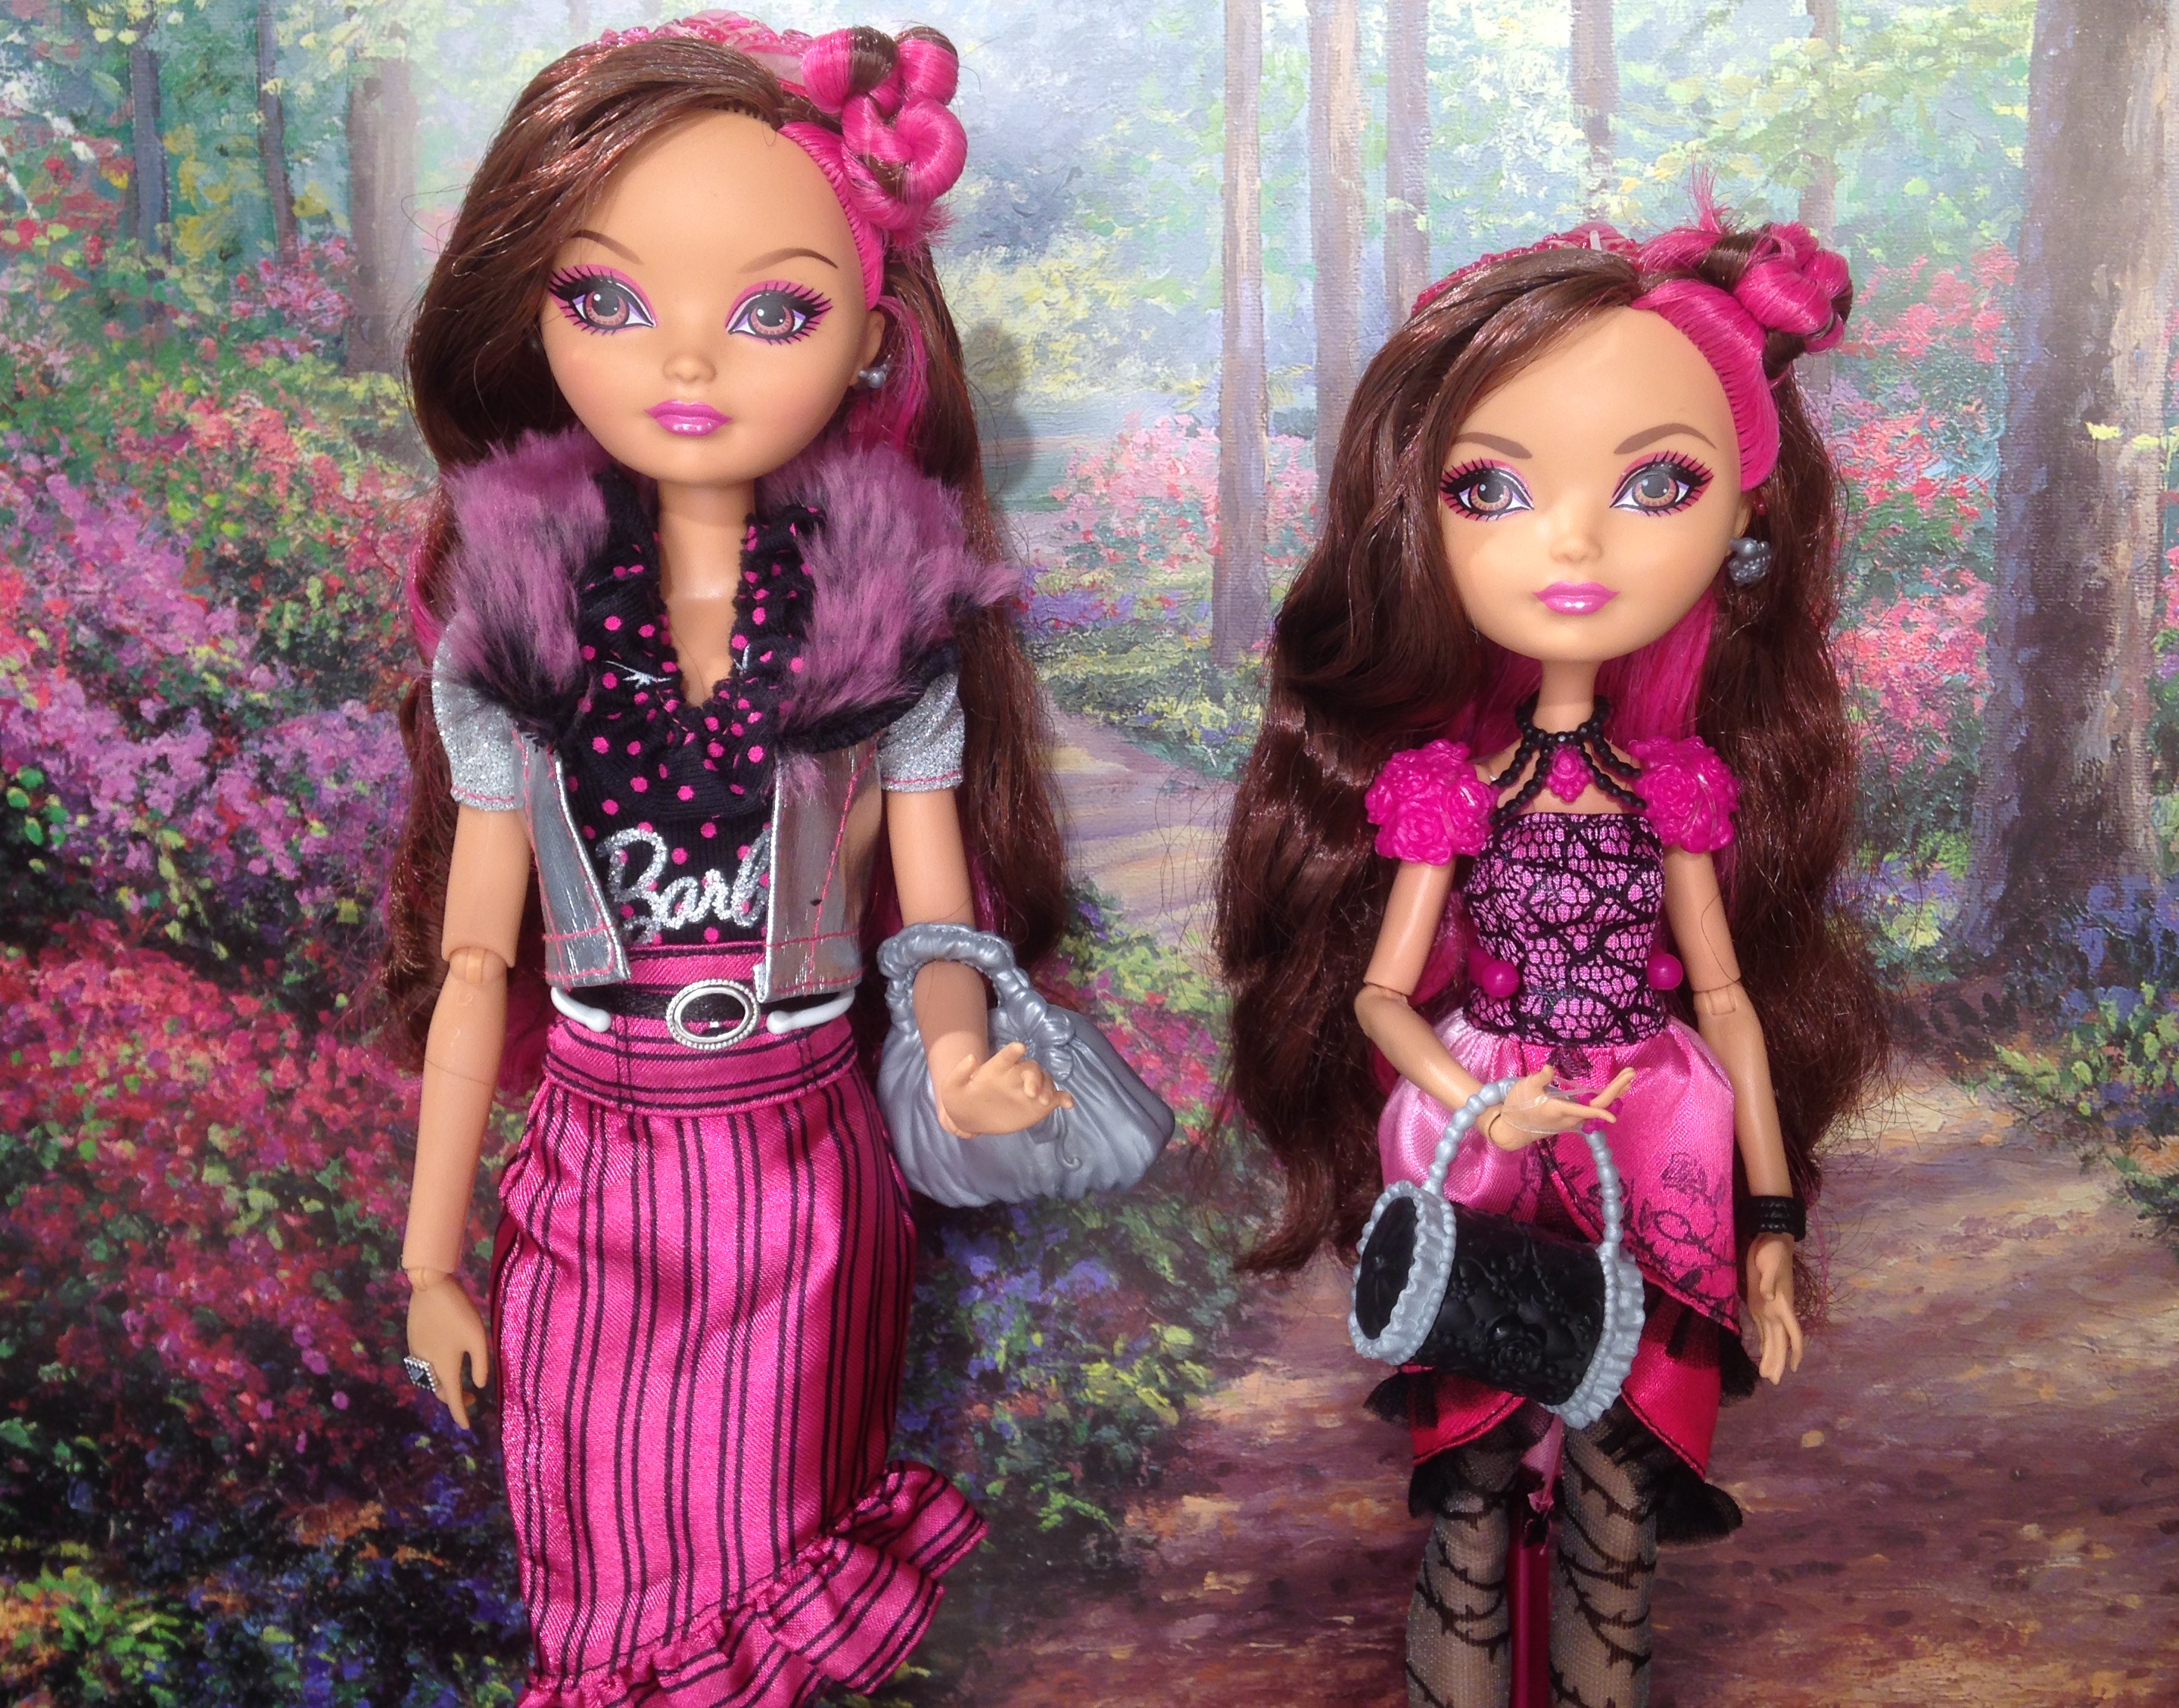 Barbie Ever After High Looks - Cool Girls Play Free Games